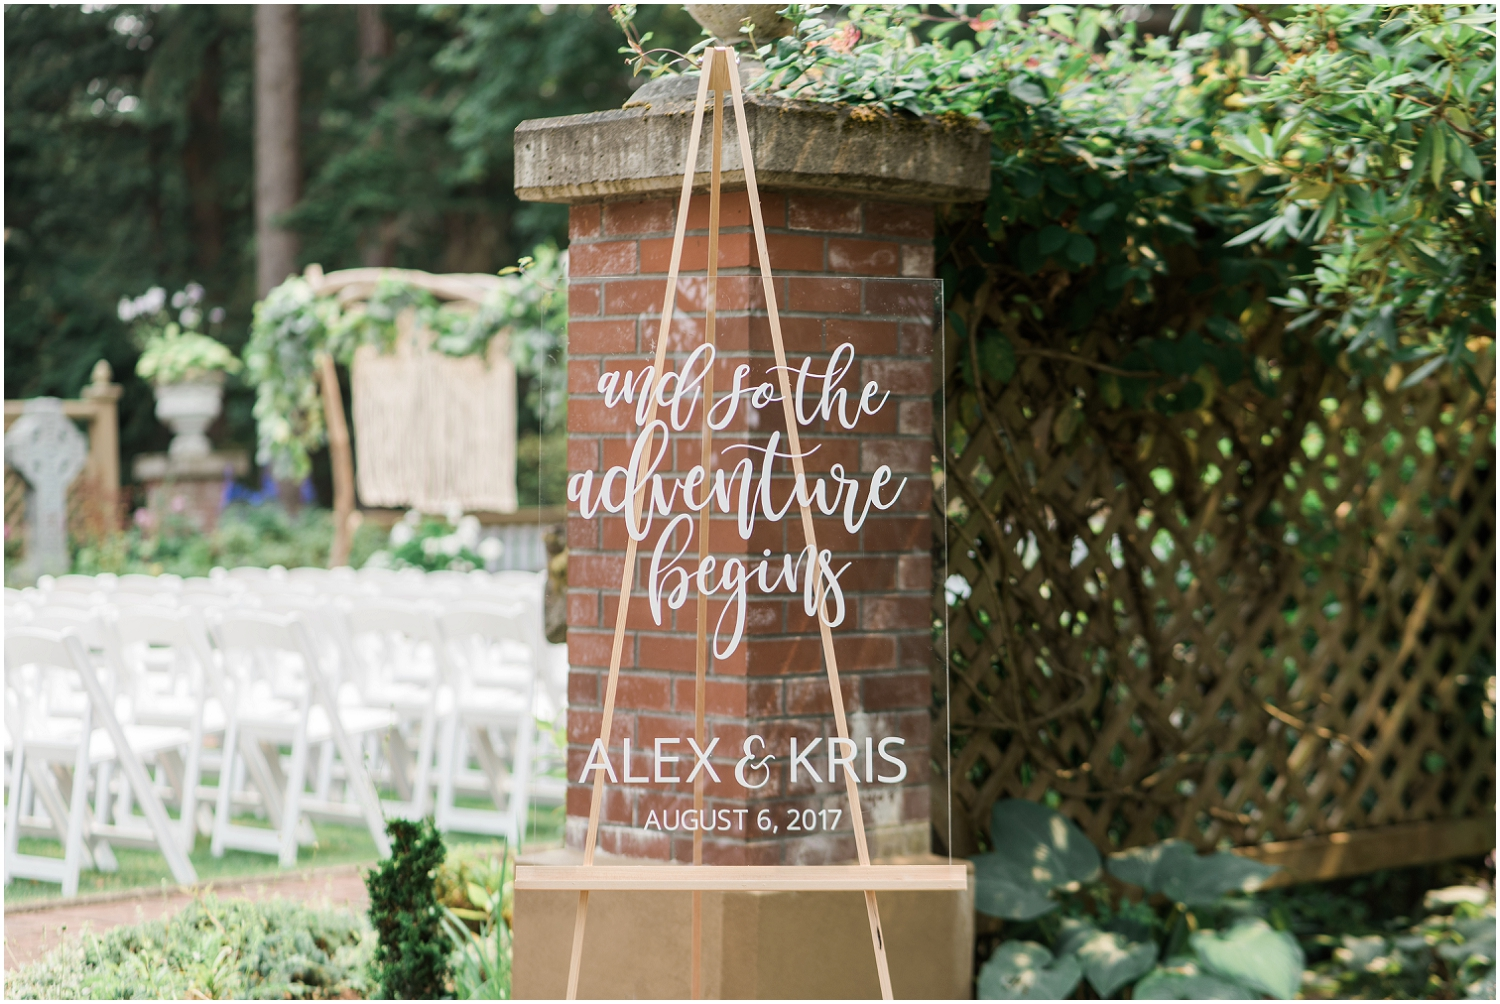 exclusive discount - from B. Jones Photography on all APKBRIDAL.com gifts and decor